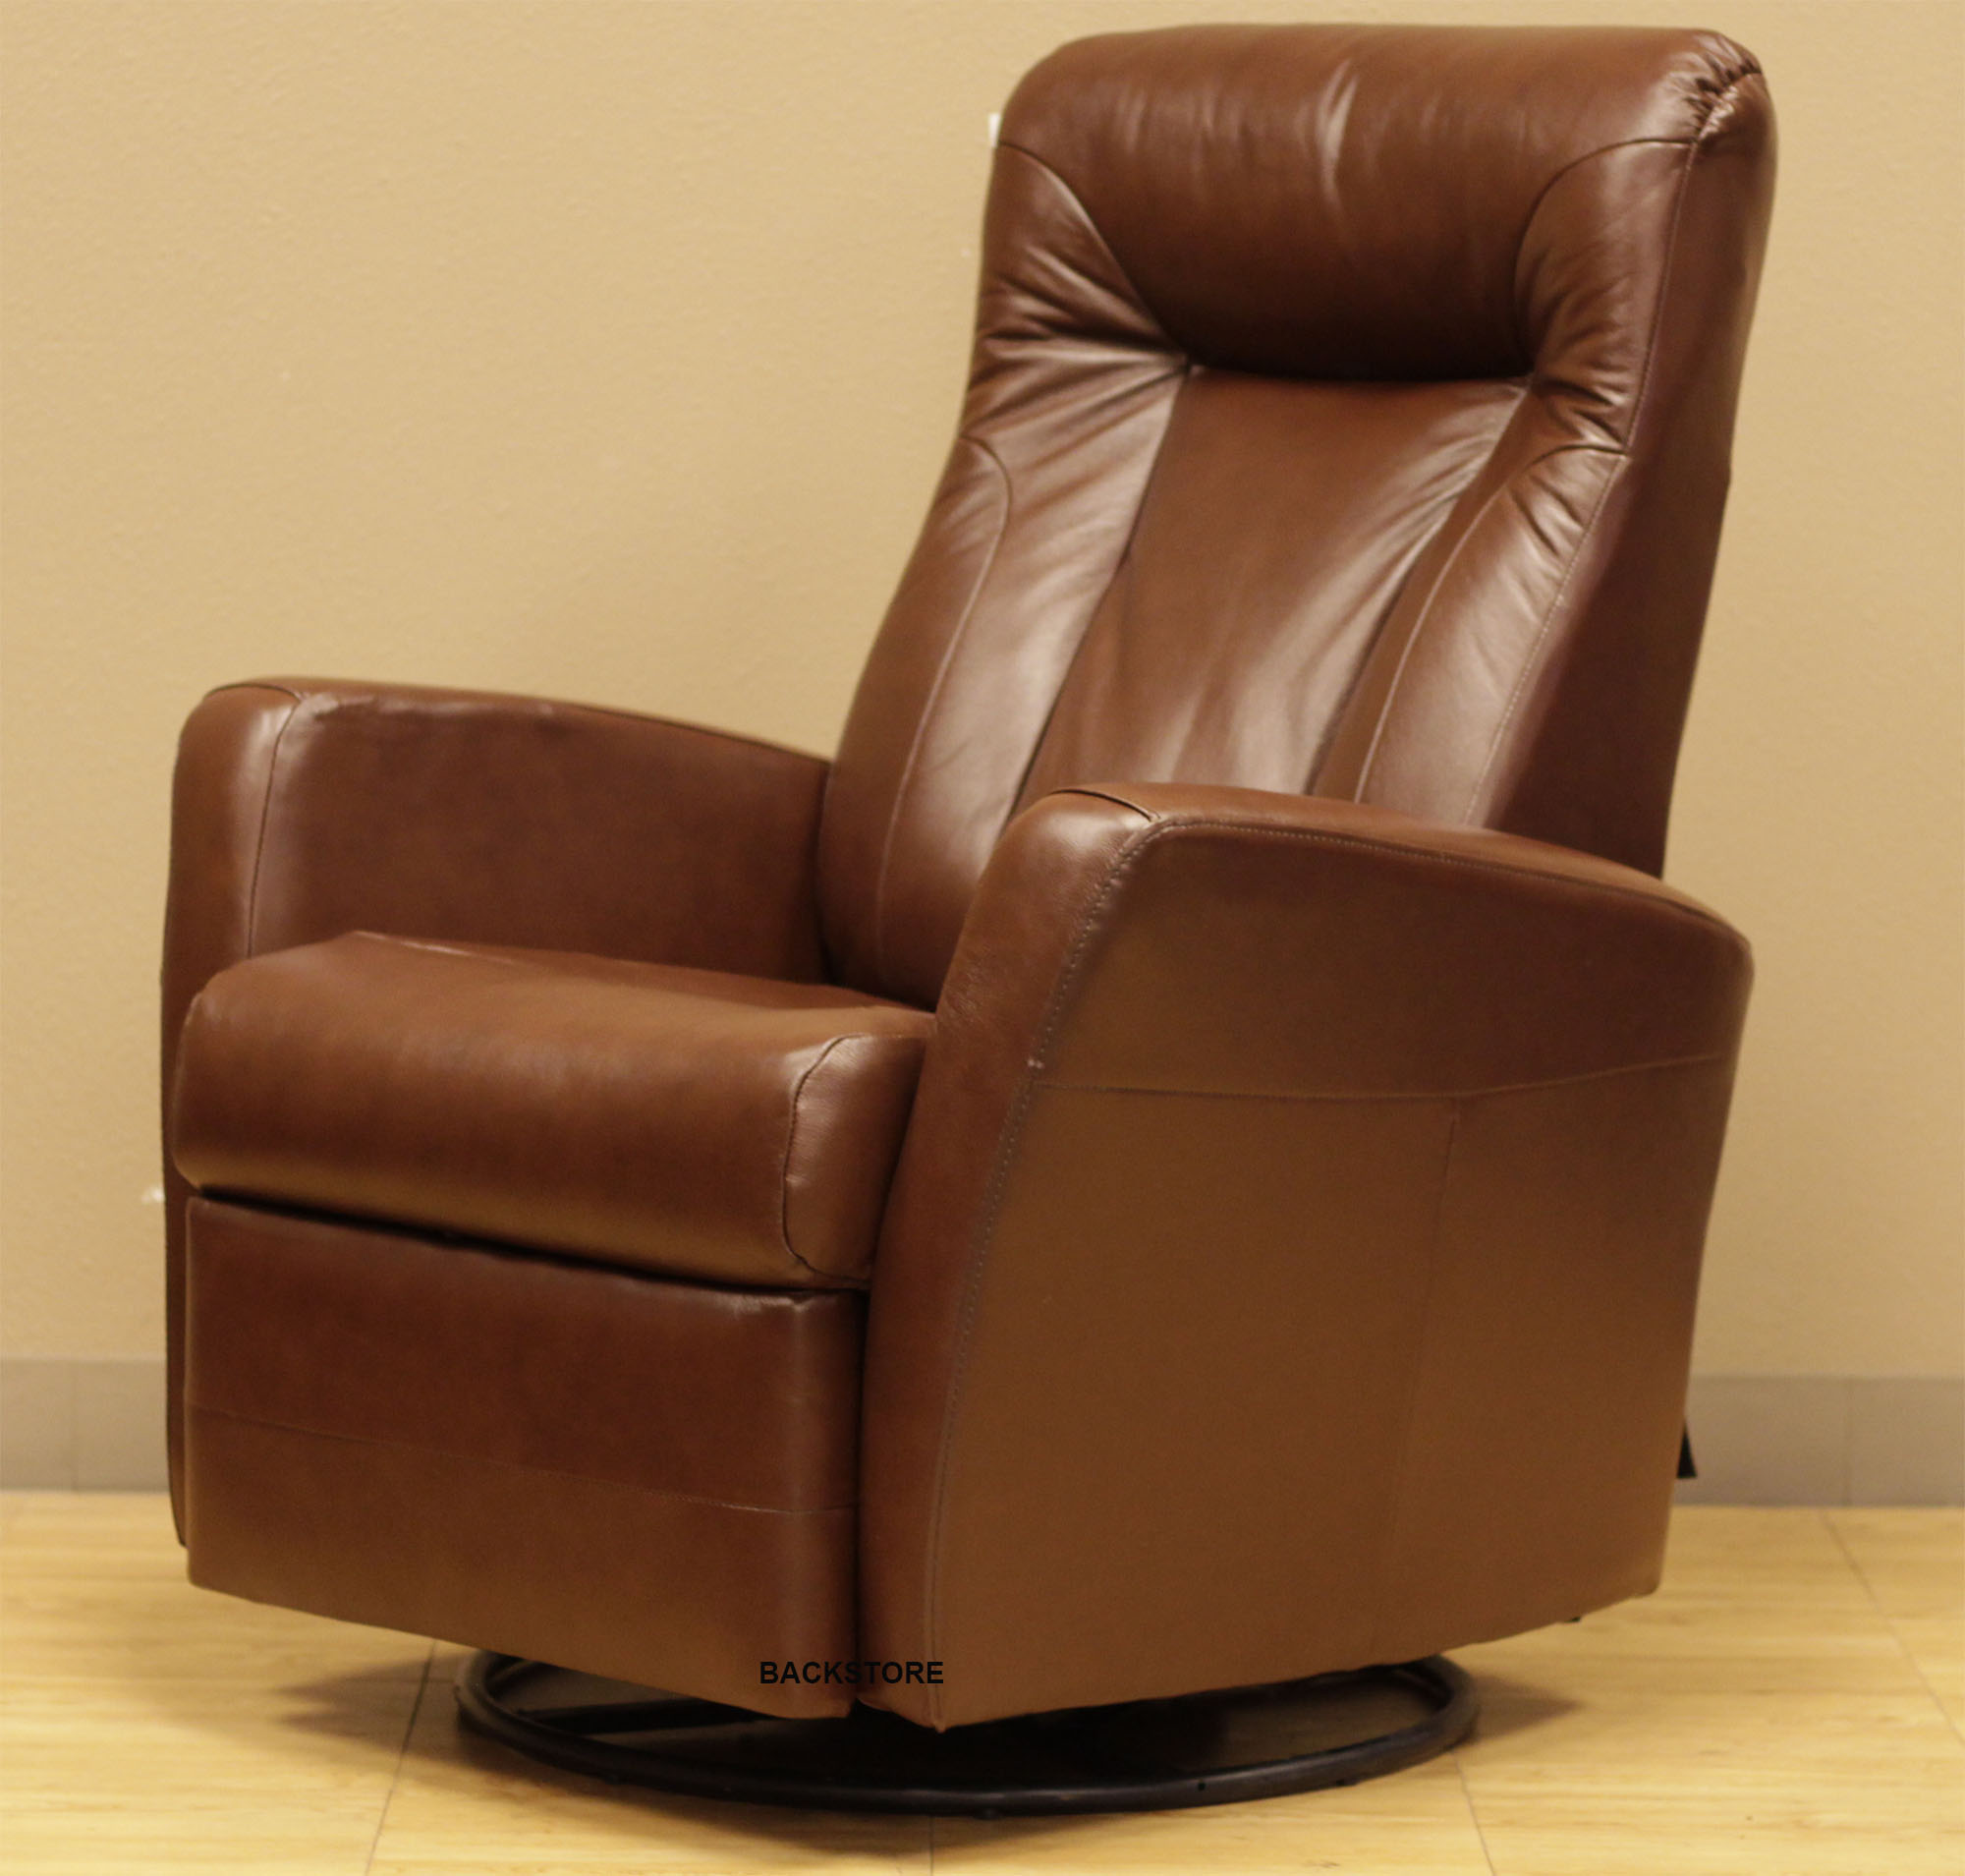 Recliner Rocking Chair Barcalounger Grissom Ii Swing Rocker Glider Recliner